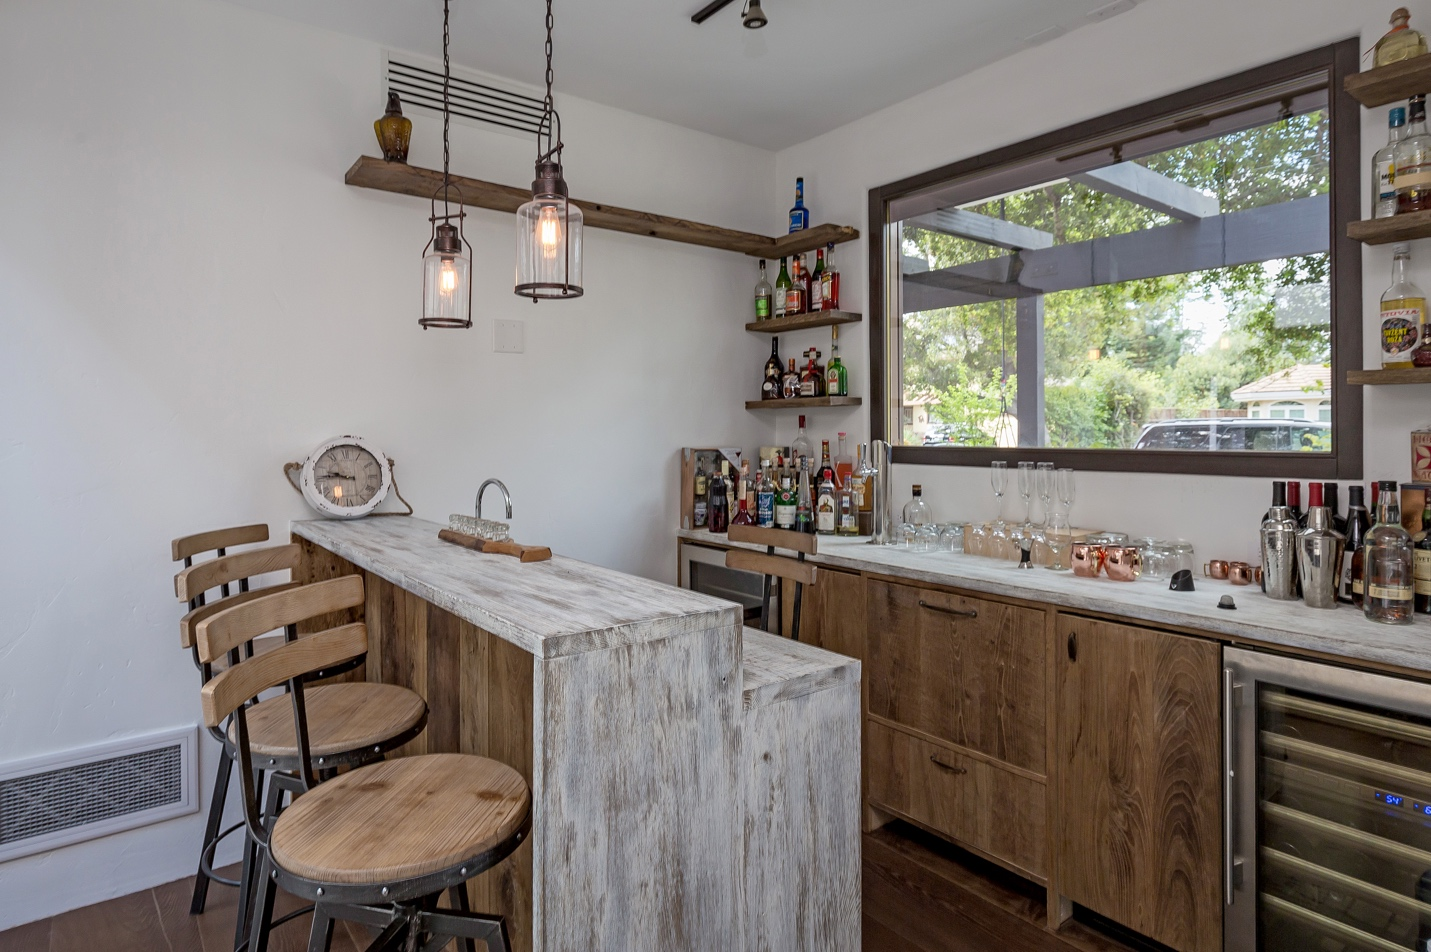 Wine , Drinks, Bar style Room design, Los Altos